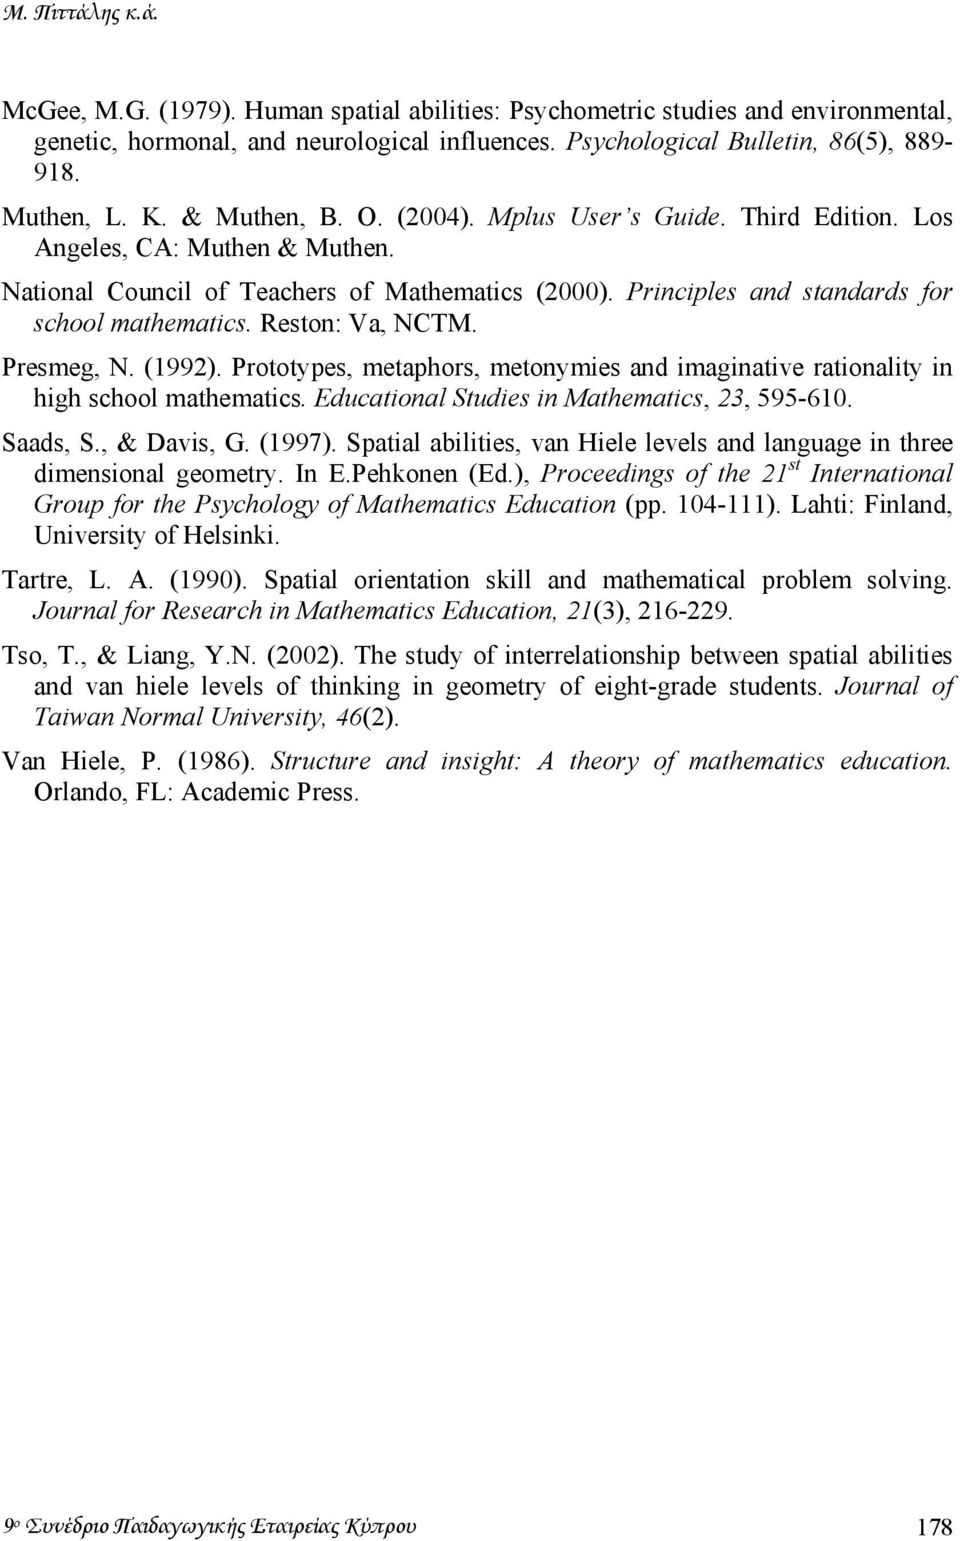 Reston: Va, NCTM. Presmeg, N. (1992). Prototypes, metaphors, metonymies and imaginative rationality in high school mathematics. Educational Studies in Mathematics, 23, 595-610. Saads, S., & Davis, G.